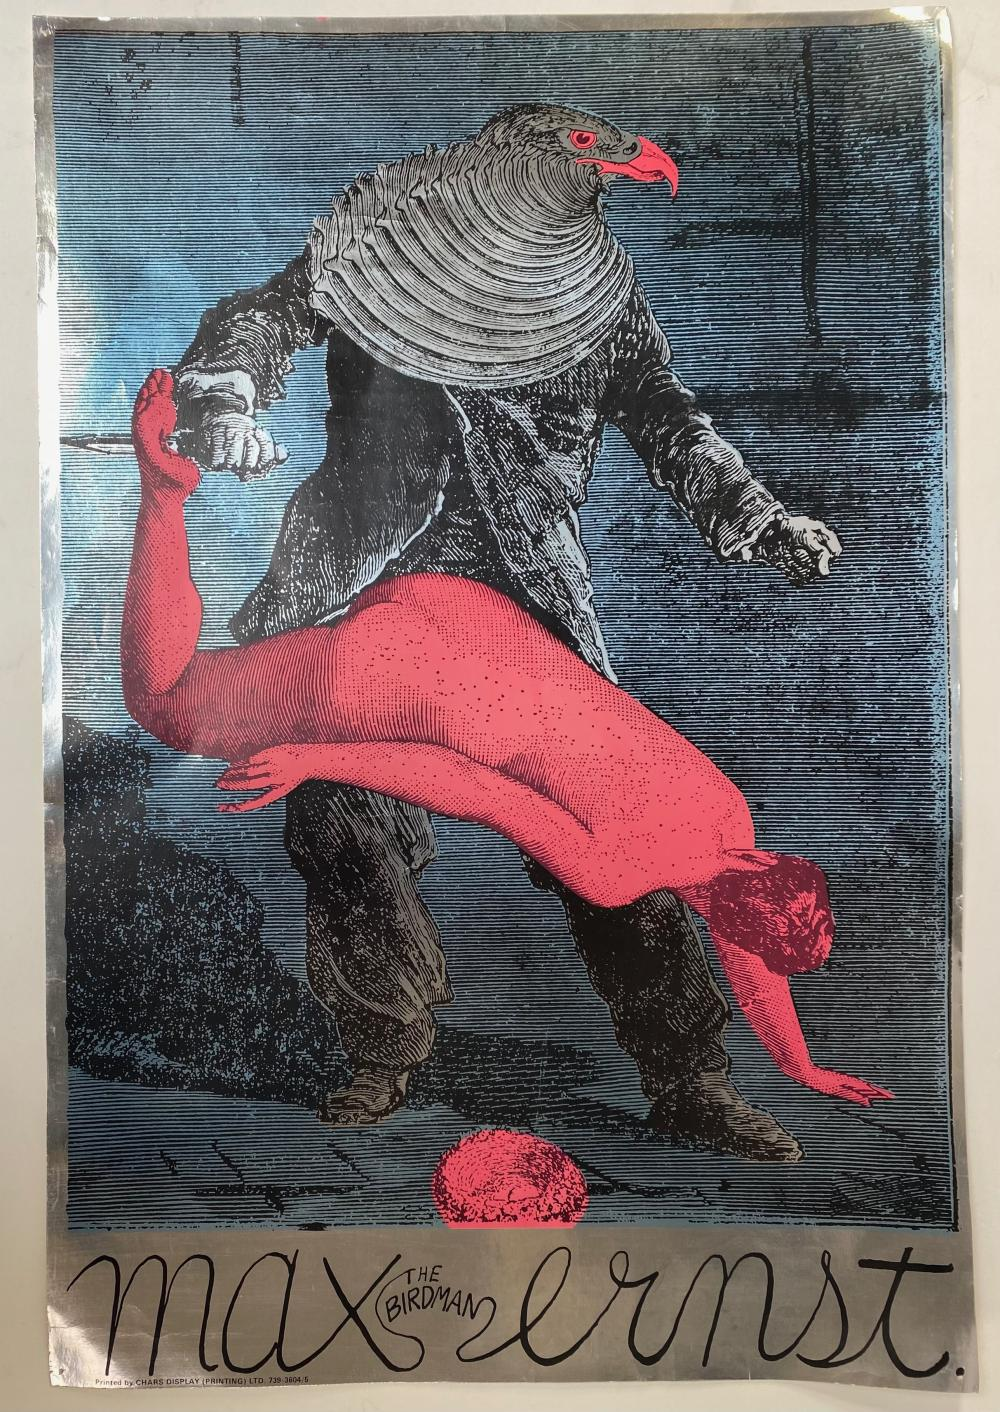 SHARP, Martin (1942-2013). Max Ernst. The Birdman. (c. 1967). Cold. lithograph and